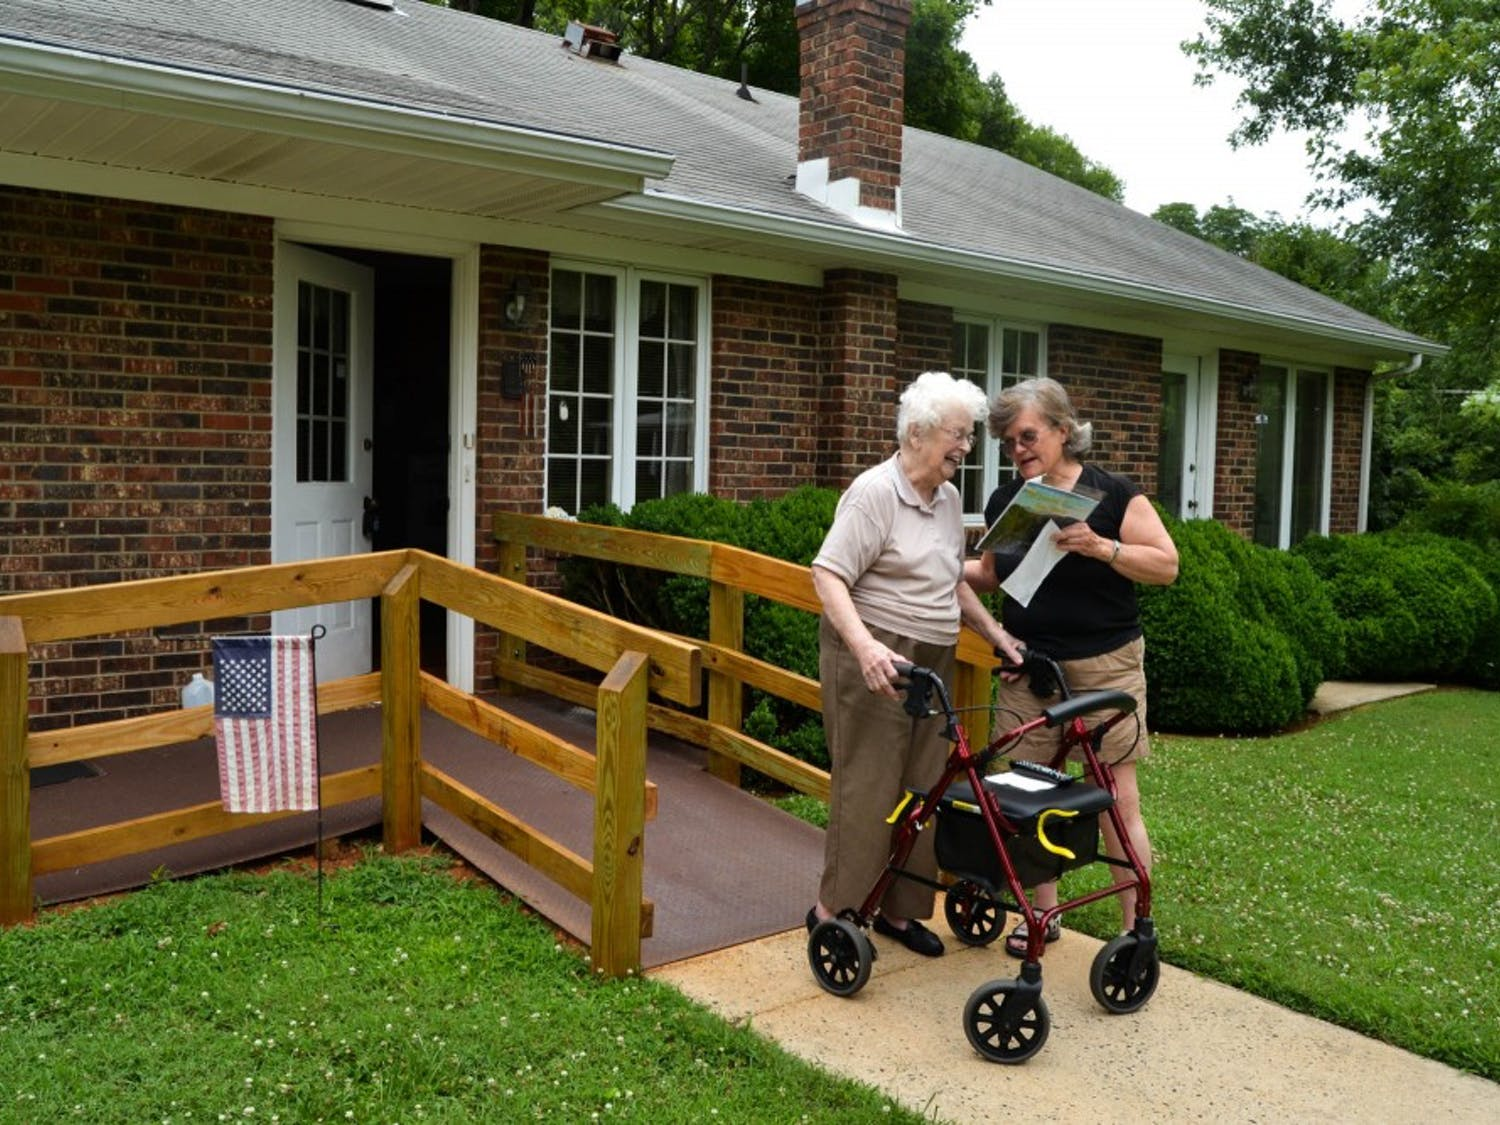 Kacky Hammon visits with Doris Ray at the bottom of her ramp built by Handy Helpers.